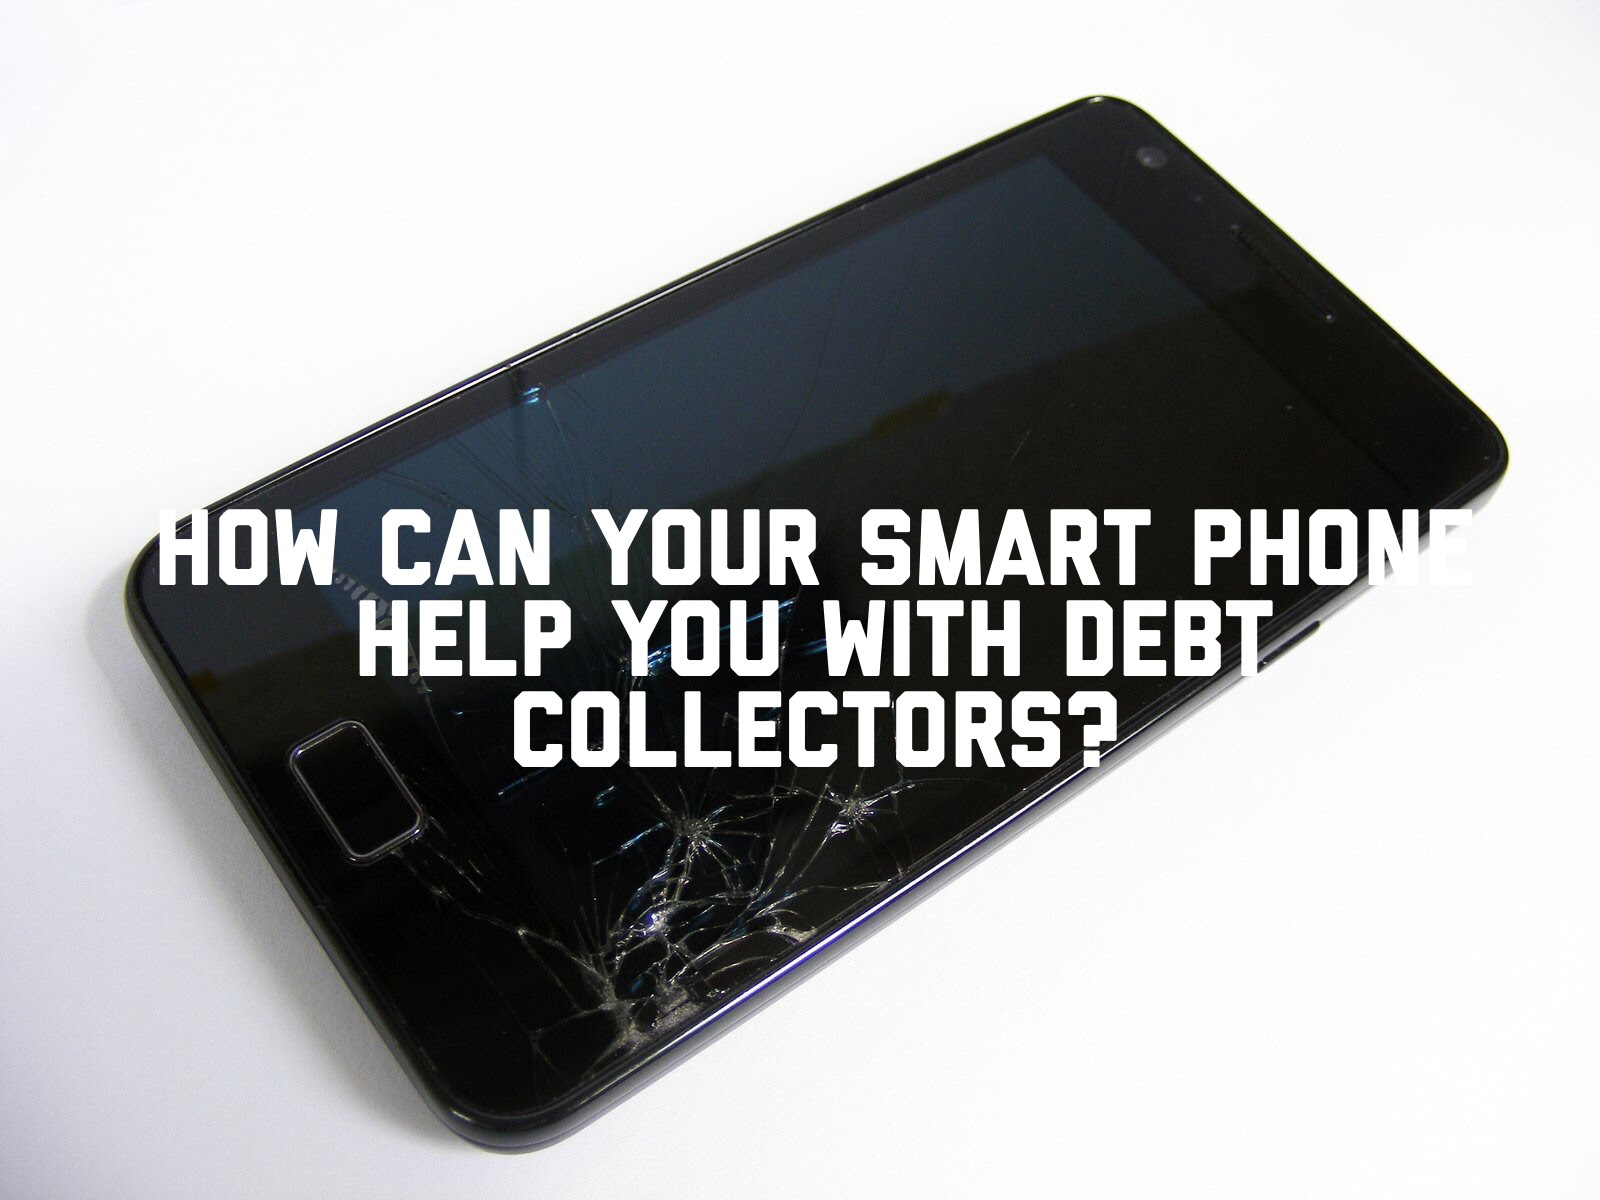 How Can Your Smart Phone Help You With Debt Collectors